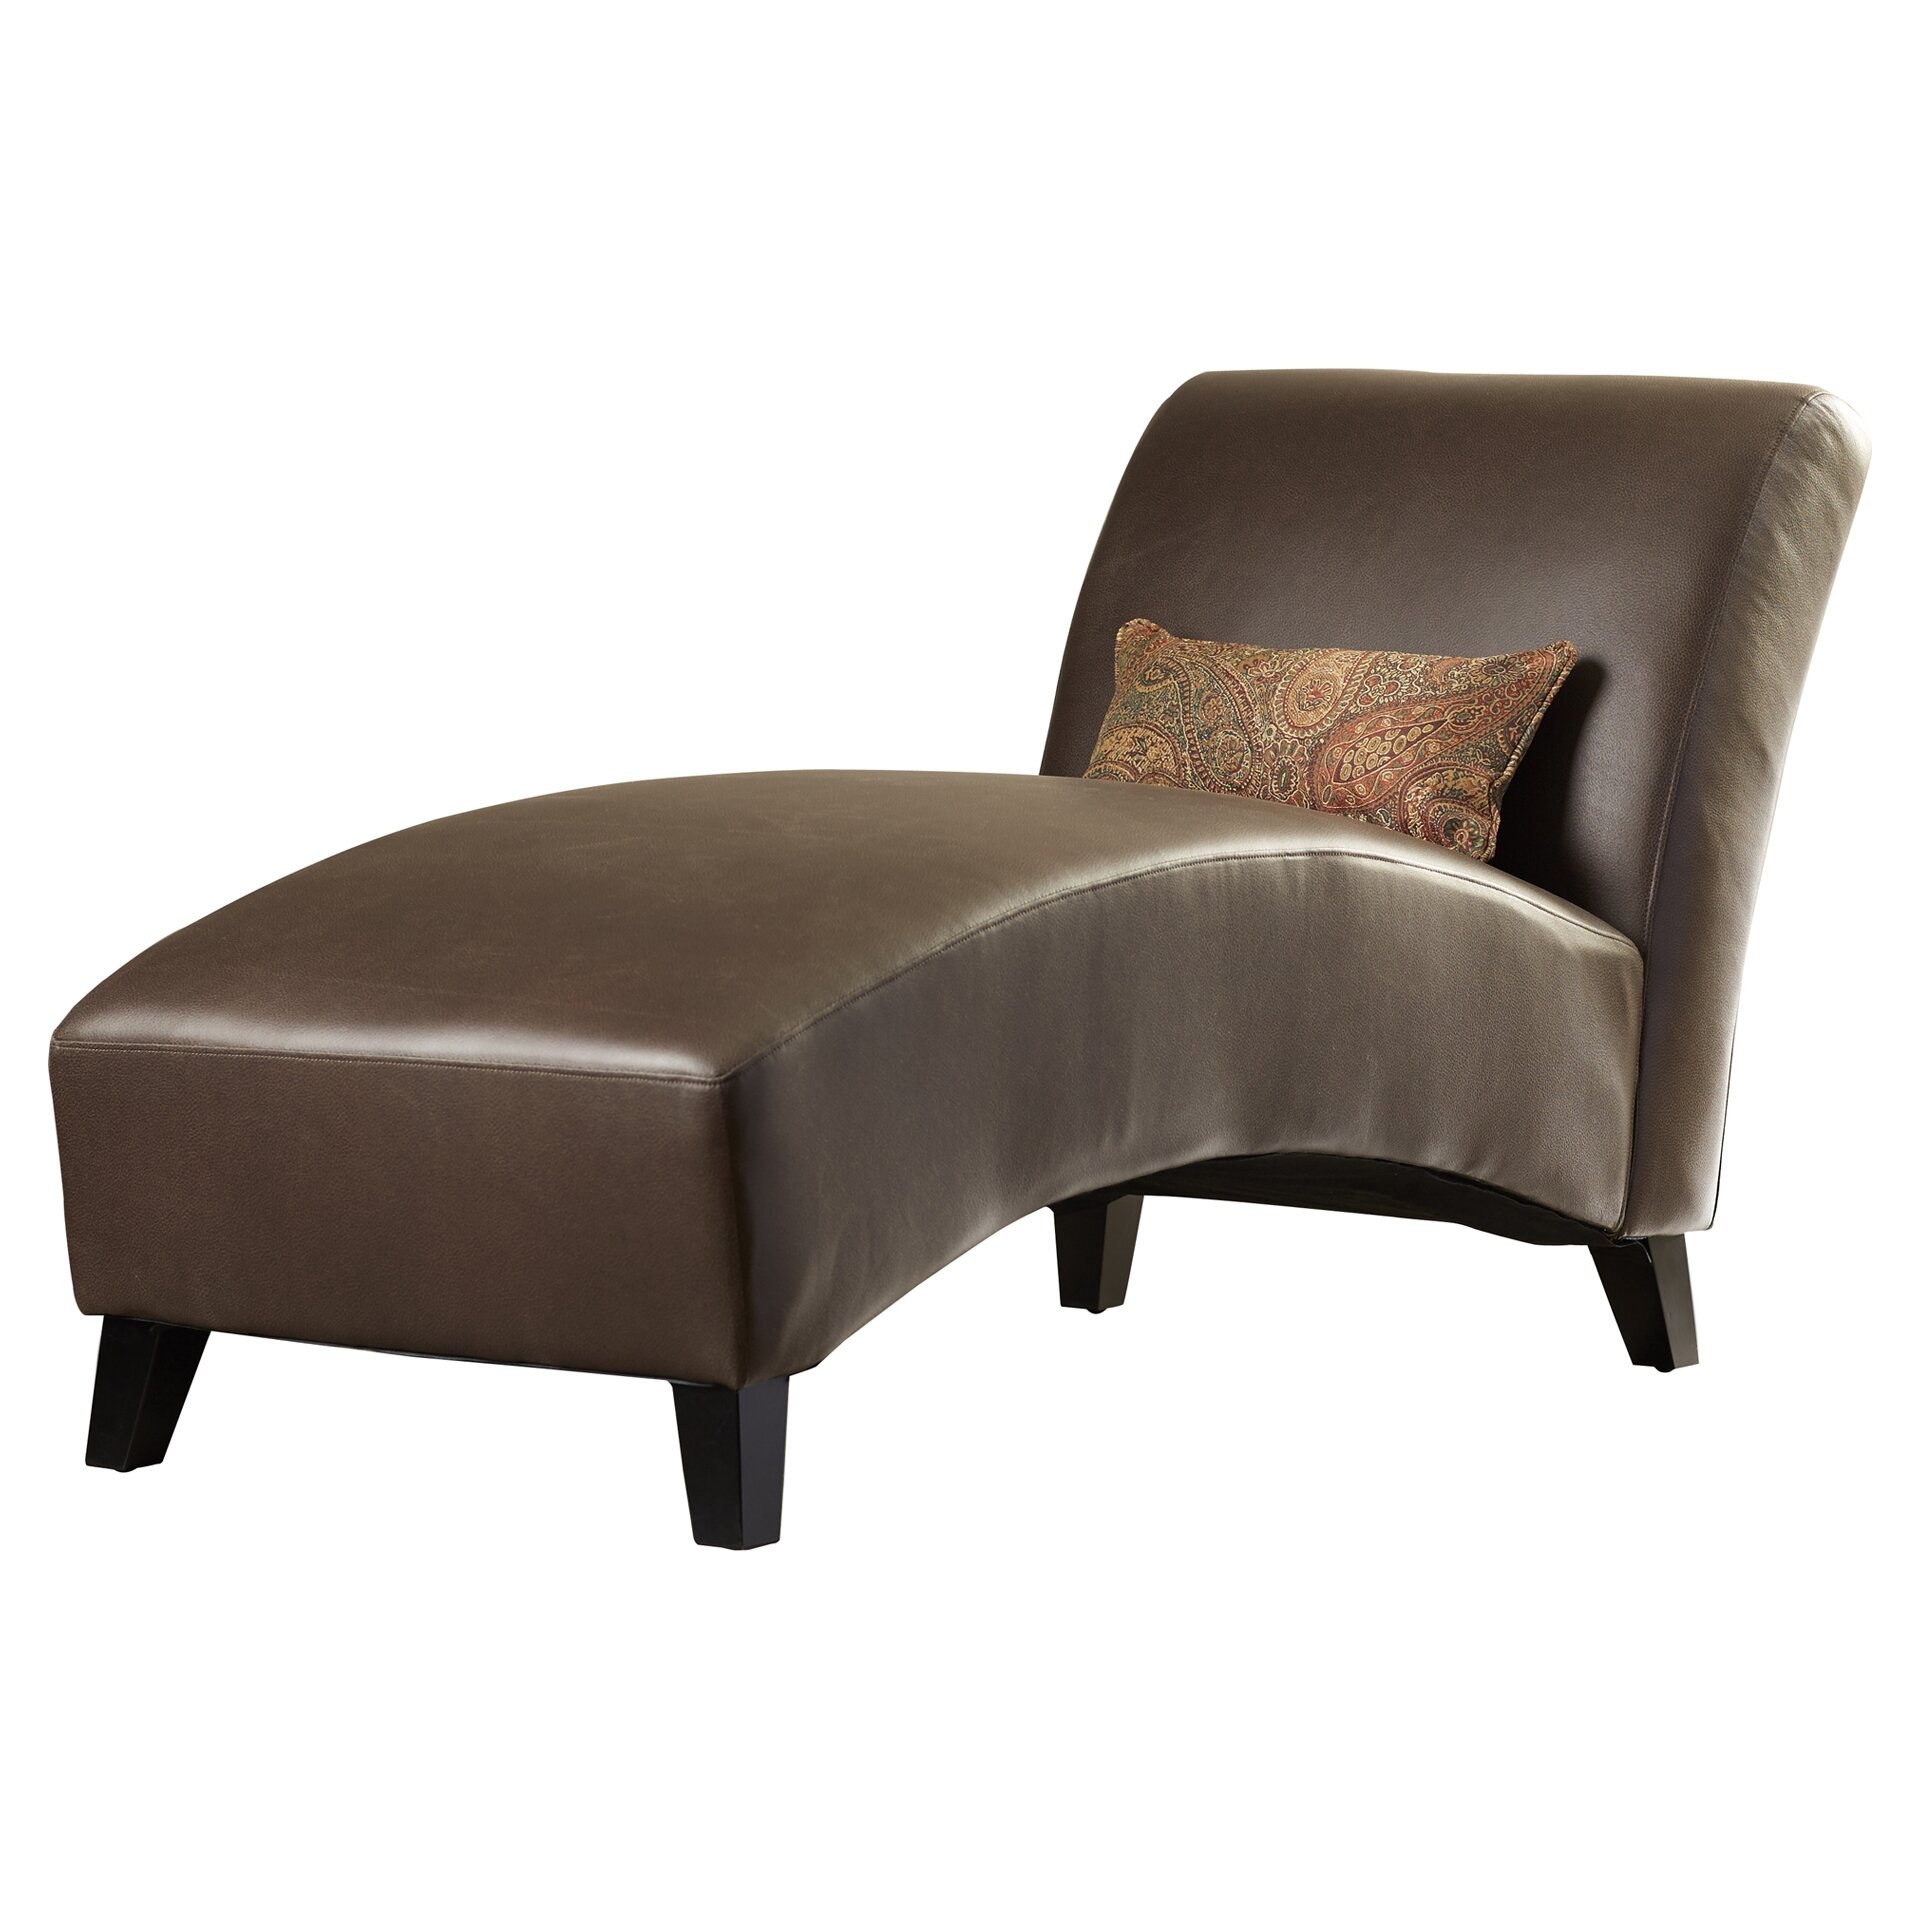 wade logan amber chaise lounge reviews wayfair. Black Bedroom Furniture Sets. Home Design Ideas